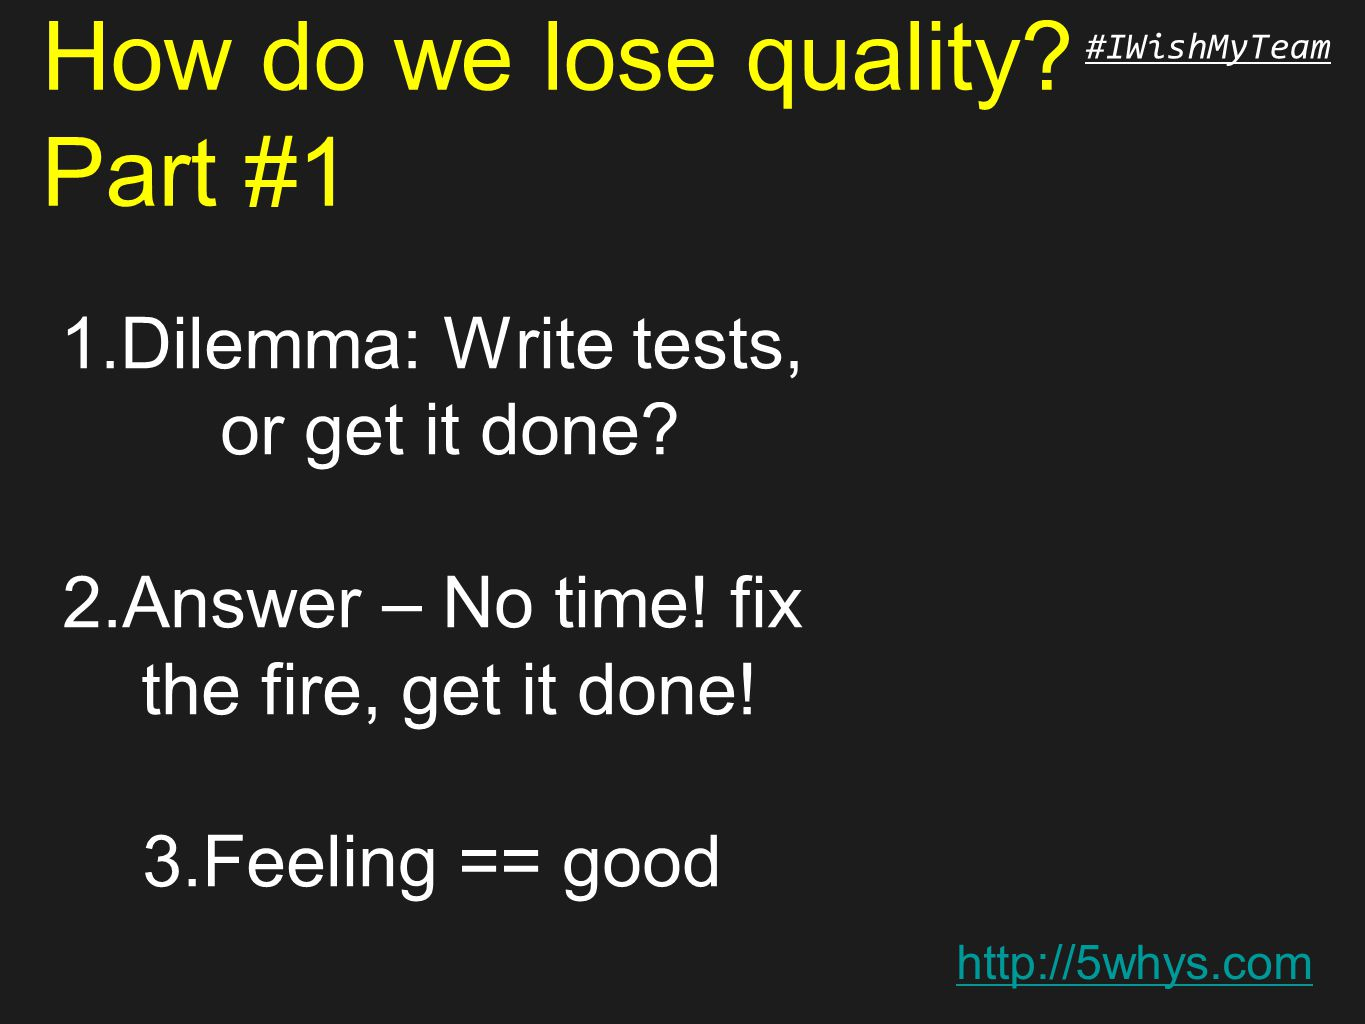 http://5whys.com #IWishMyTeam How do we lose quality.